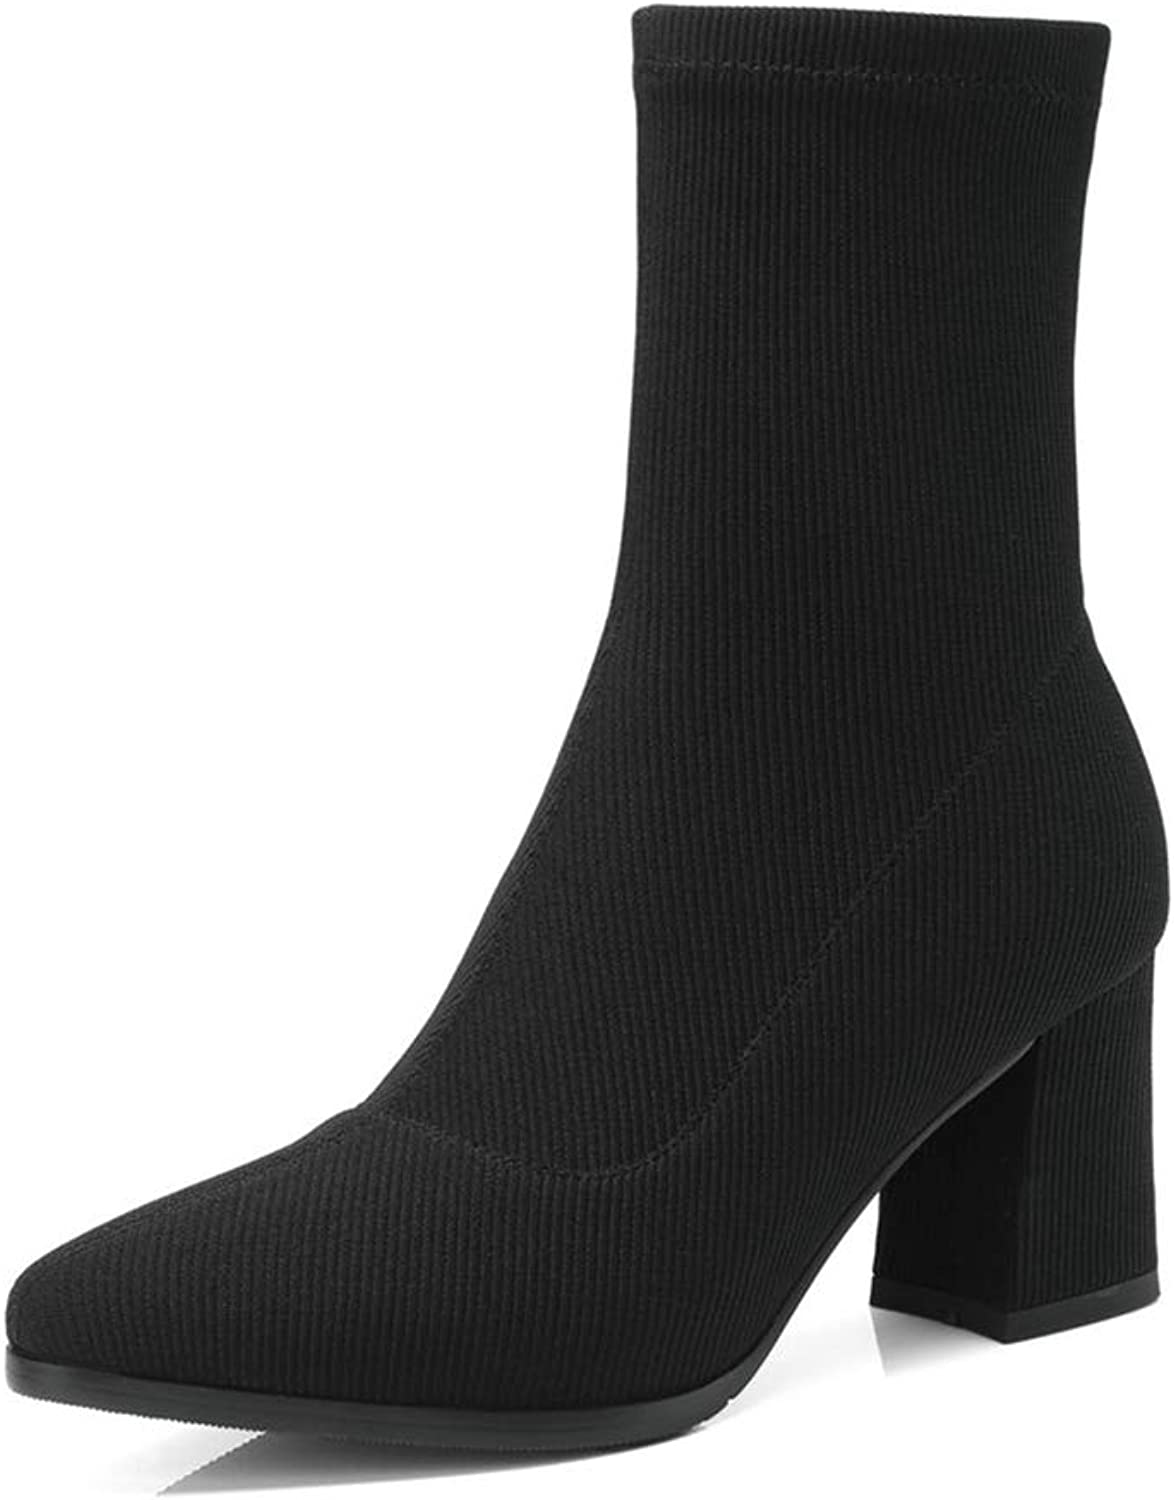 AVENBER Women Mid Calf Boots Knitting All Match Fashion Comfortable Elastic Pointd Toe Winter Block Heel Ankle shoes